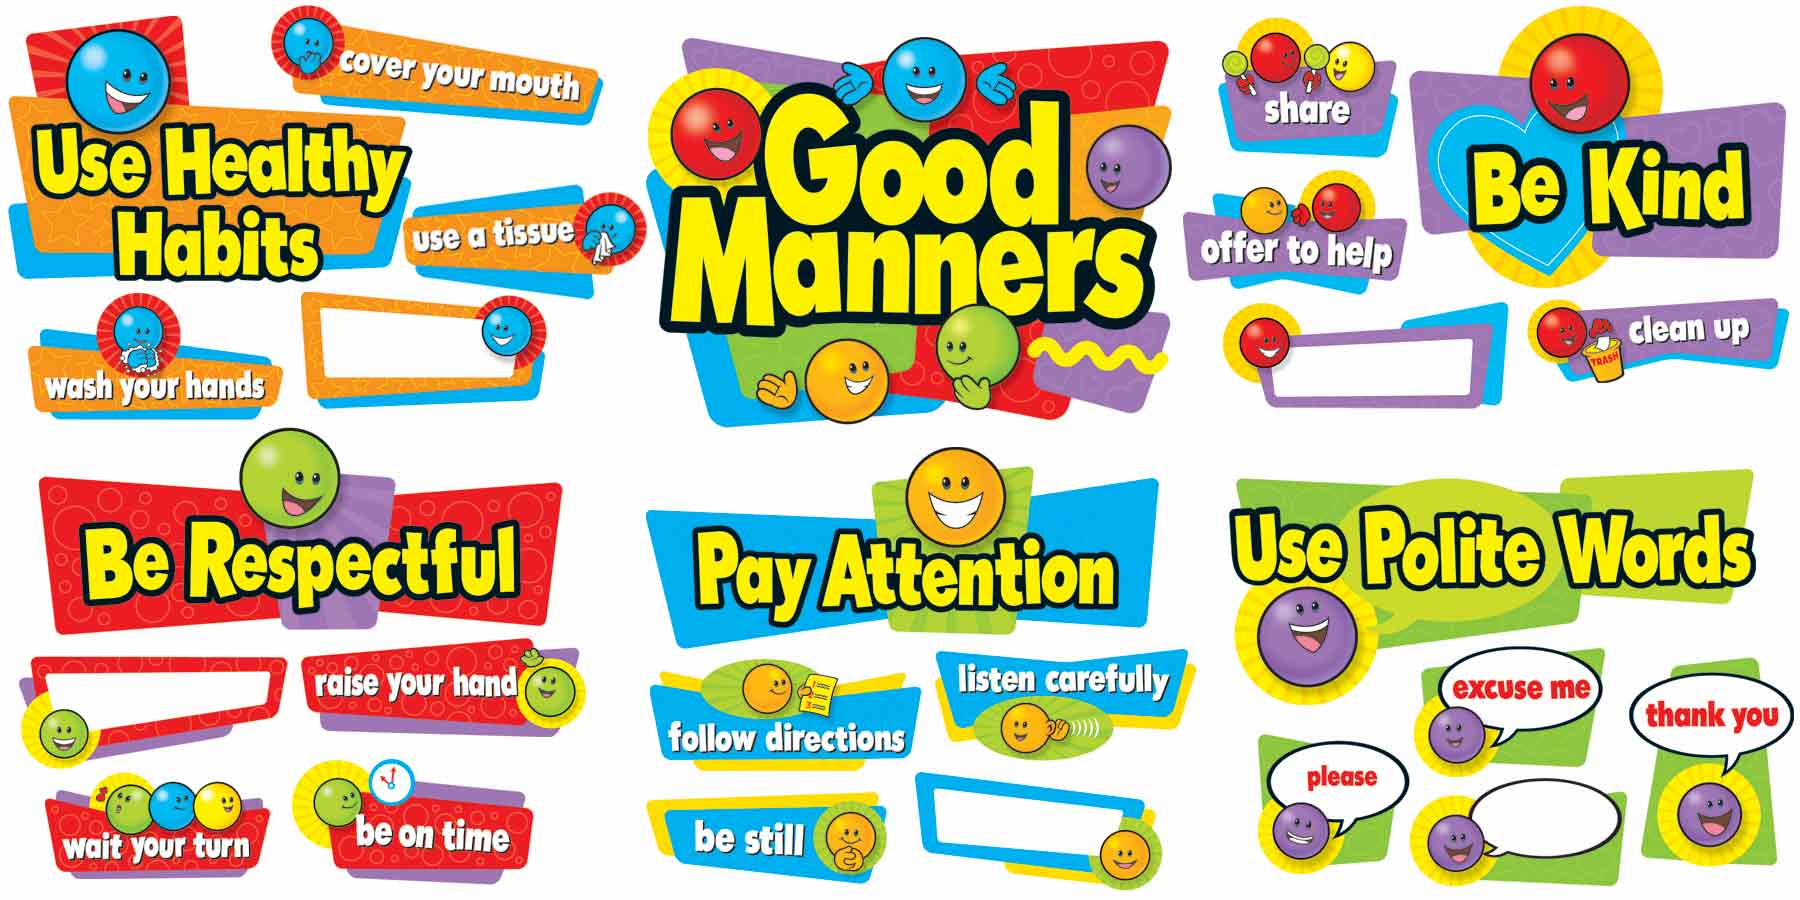 essay good manners kids Good manners are the thing which is not limited for learning from any particular place but can be learnt from everywhere by everyone having good manners in daily routine life is as much important as any other thing in your life.